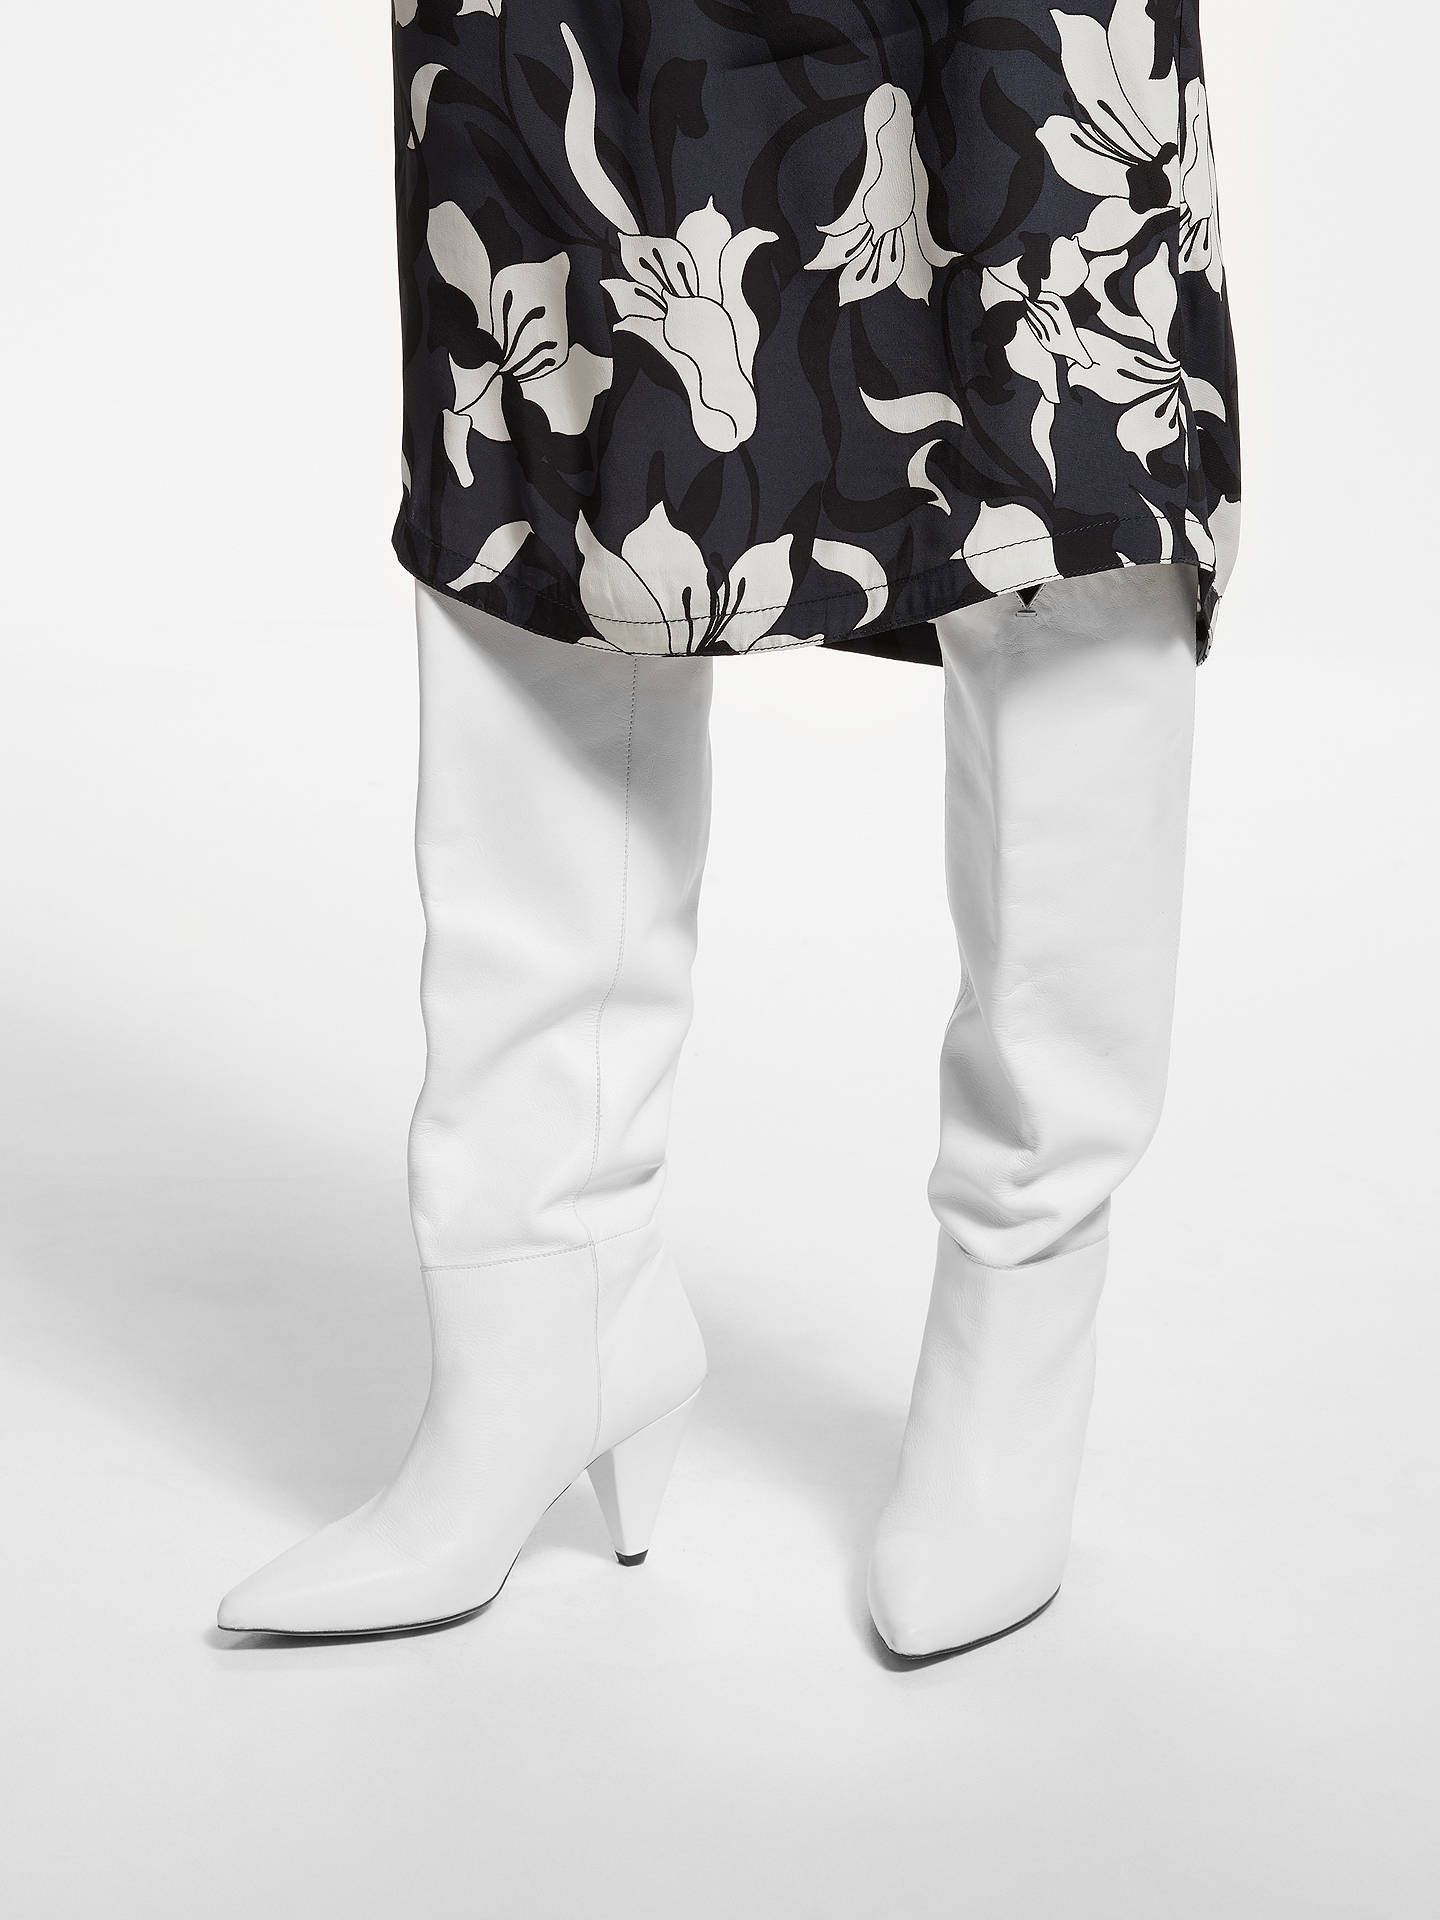 BuyKin Sibylla Leather Cone Heel Knee High Boots, White, 4 Online at johnlewis.com